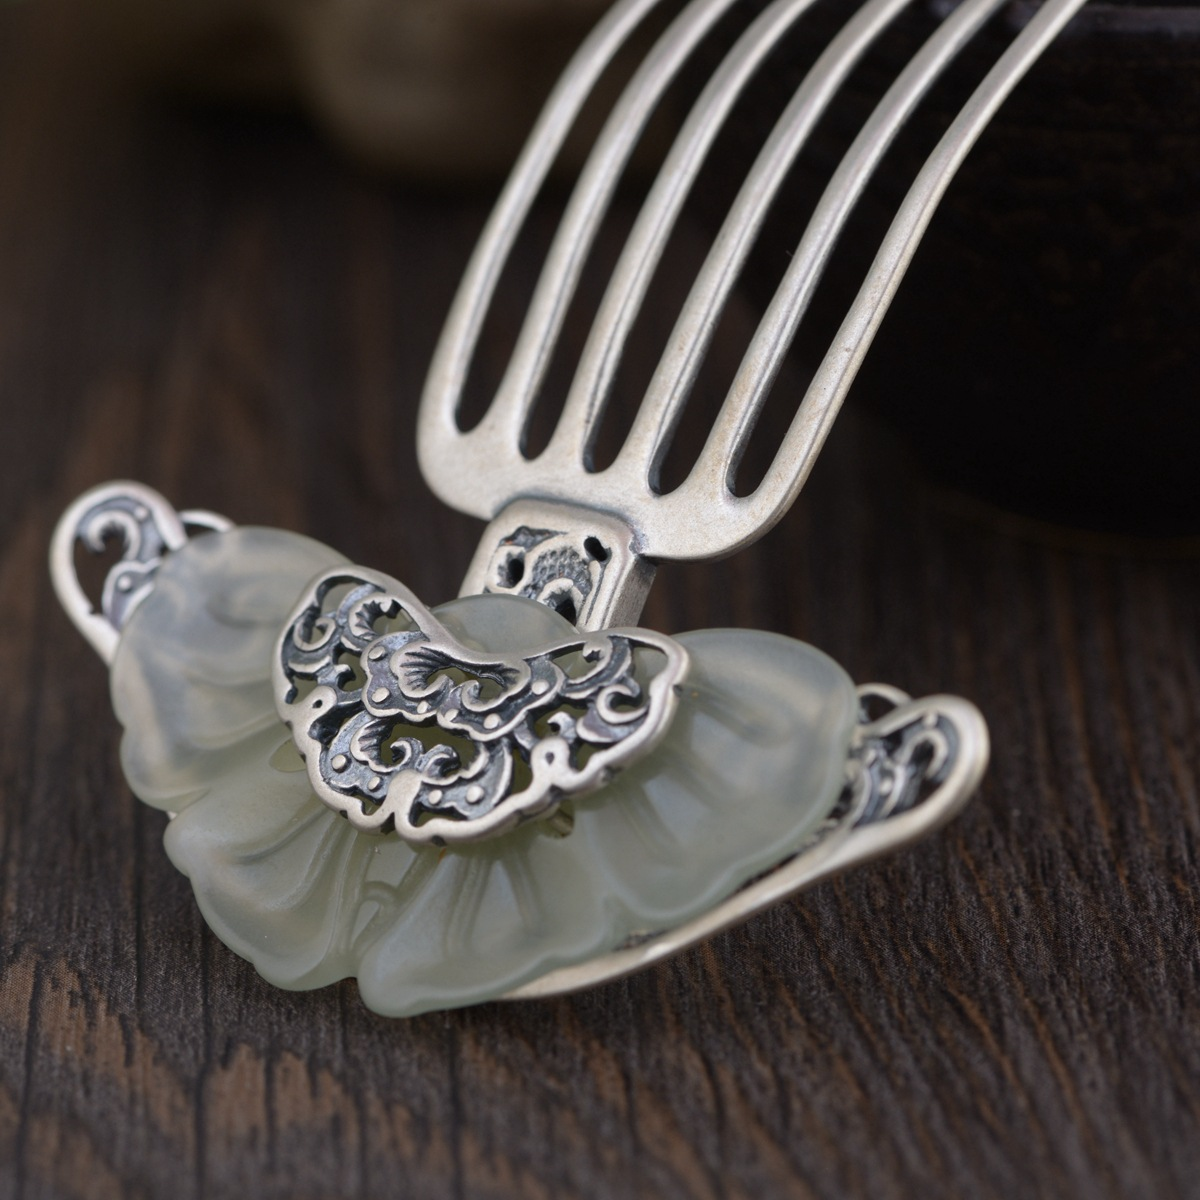 Stone Inlay Thai Silver Hair Comb Vintage Chinese Style Silver Hairpin Peony Flower Hair Pin Jewelry Hair Accessories WIGO1151